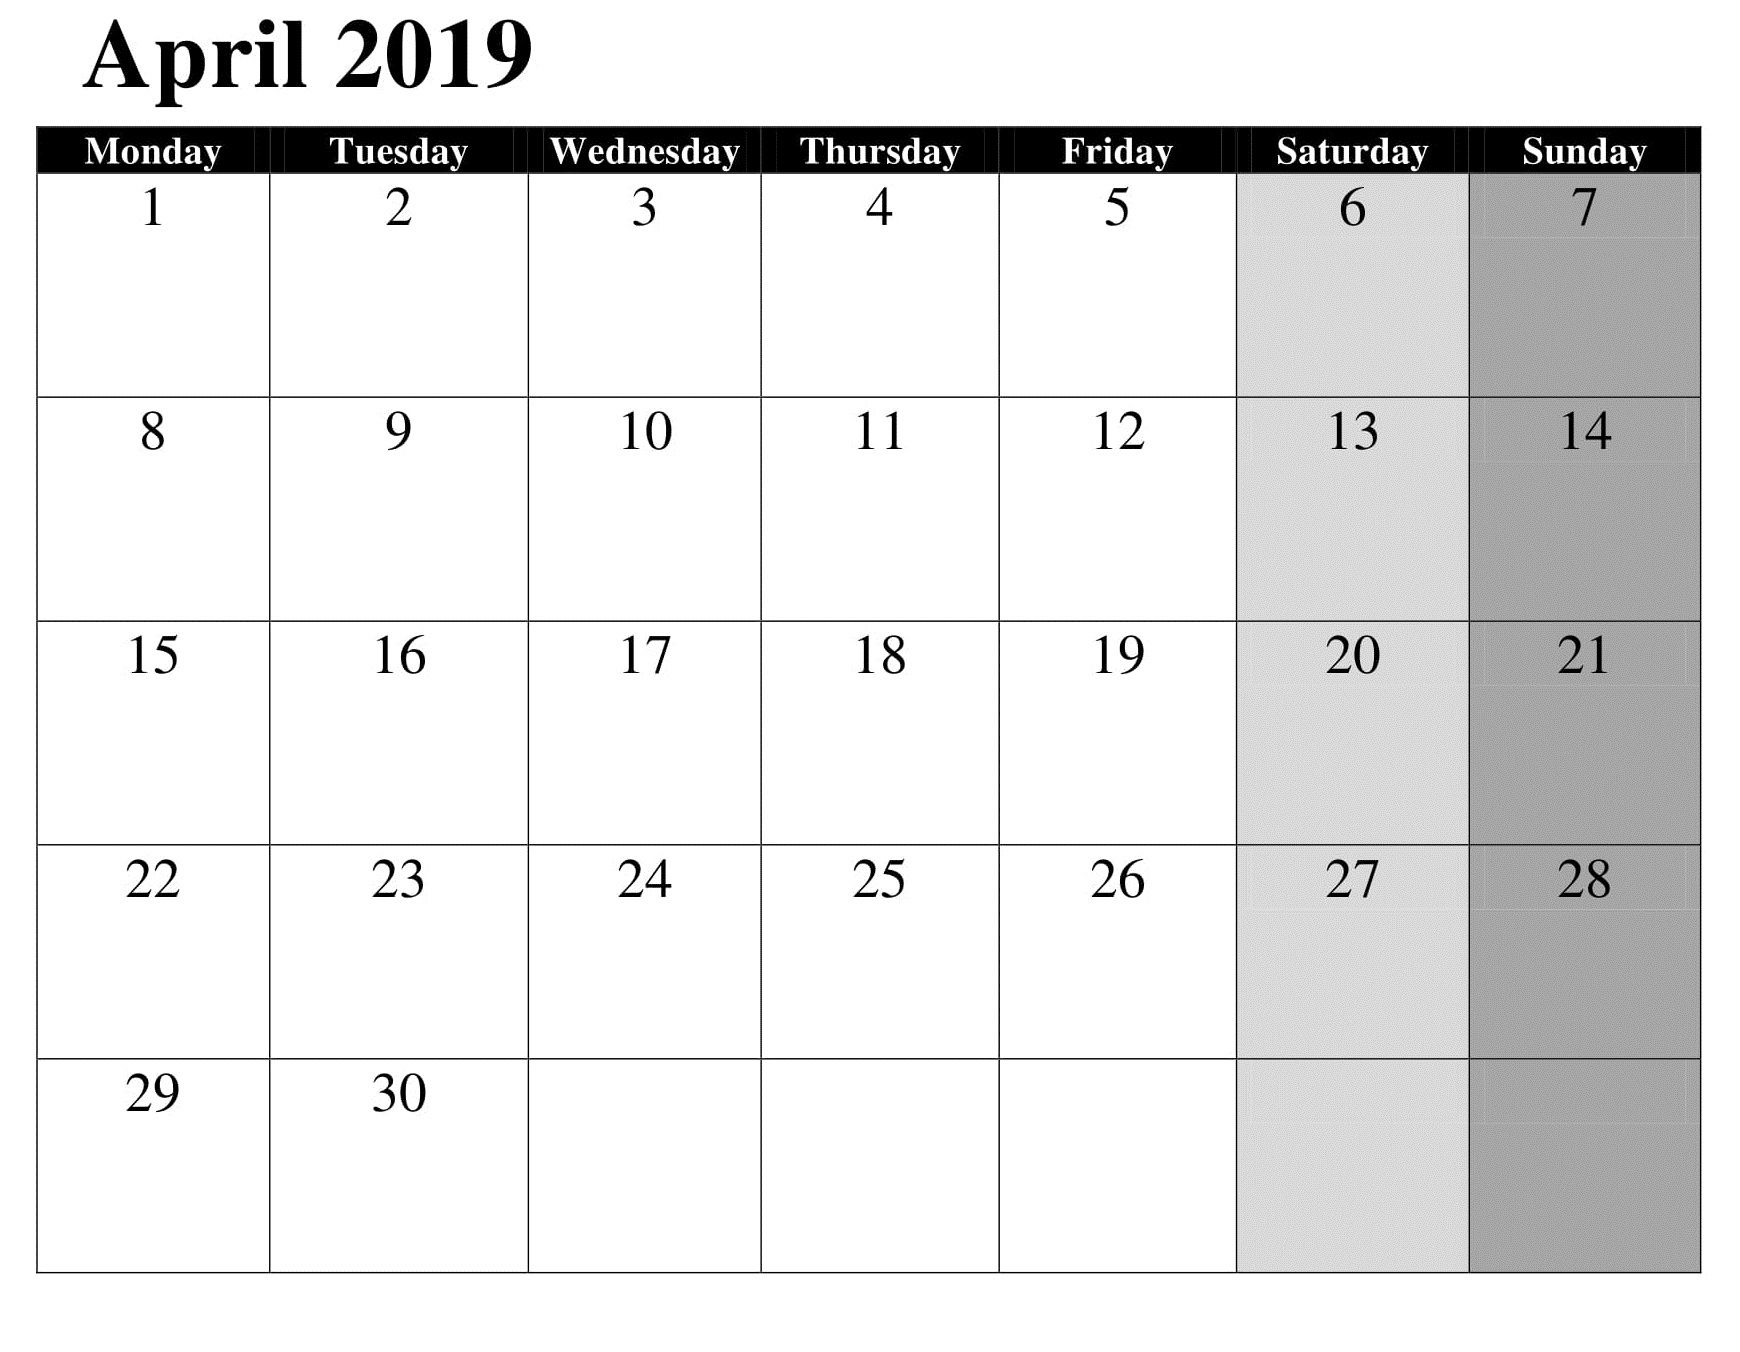 April Google Calendar Template 2019 | Calendar April 2019